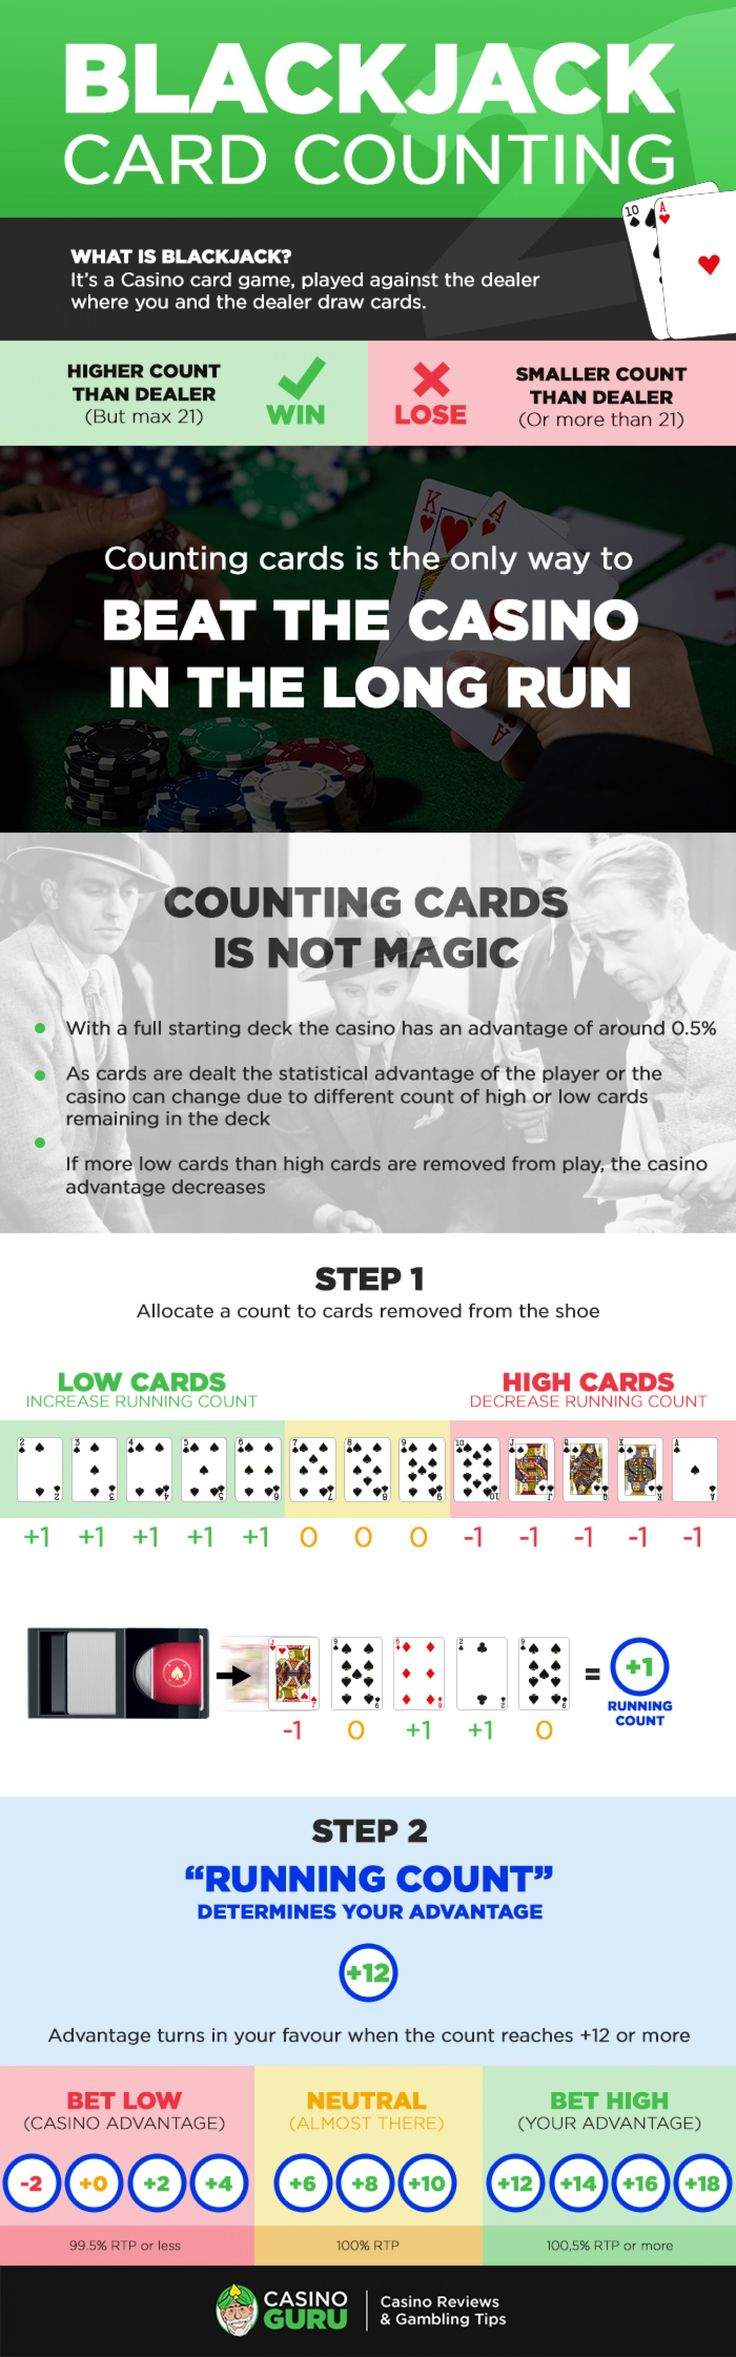 This infographic shows you how to count cards in blackjack quickly and efficiently. Read more here: https://www.casinoguru.online/card-counting-in-blackjack